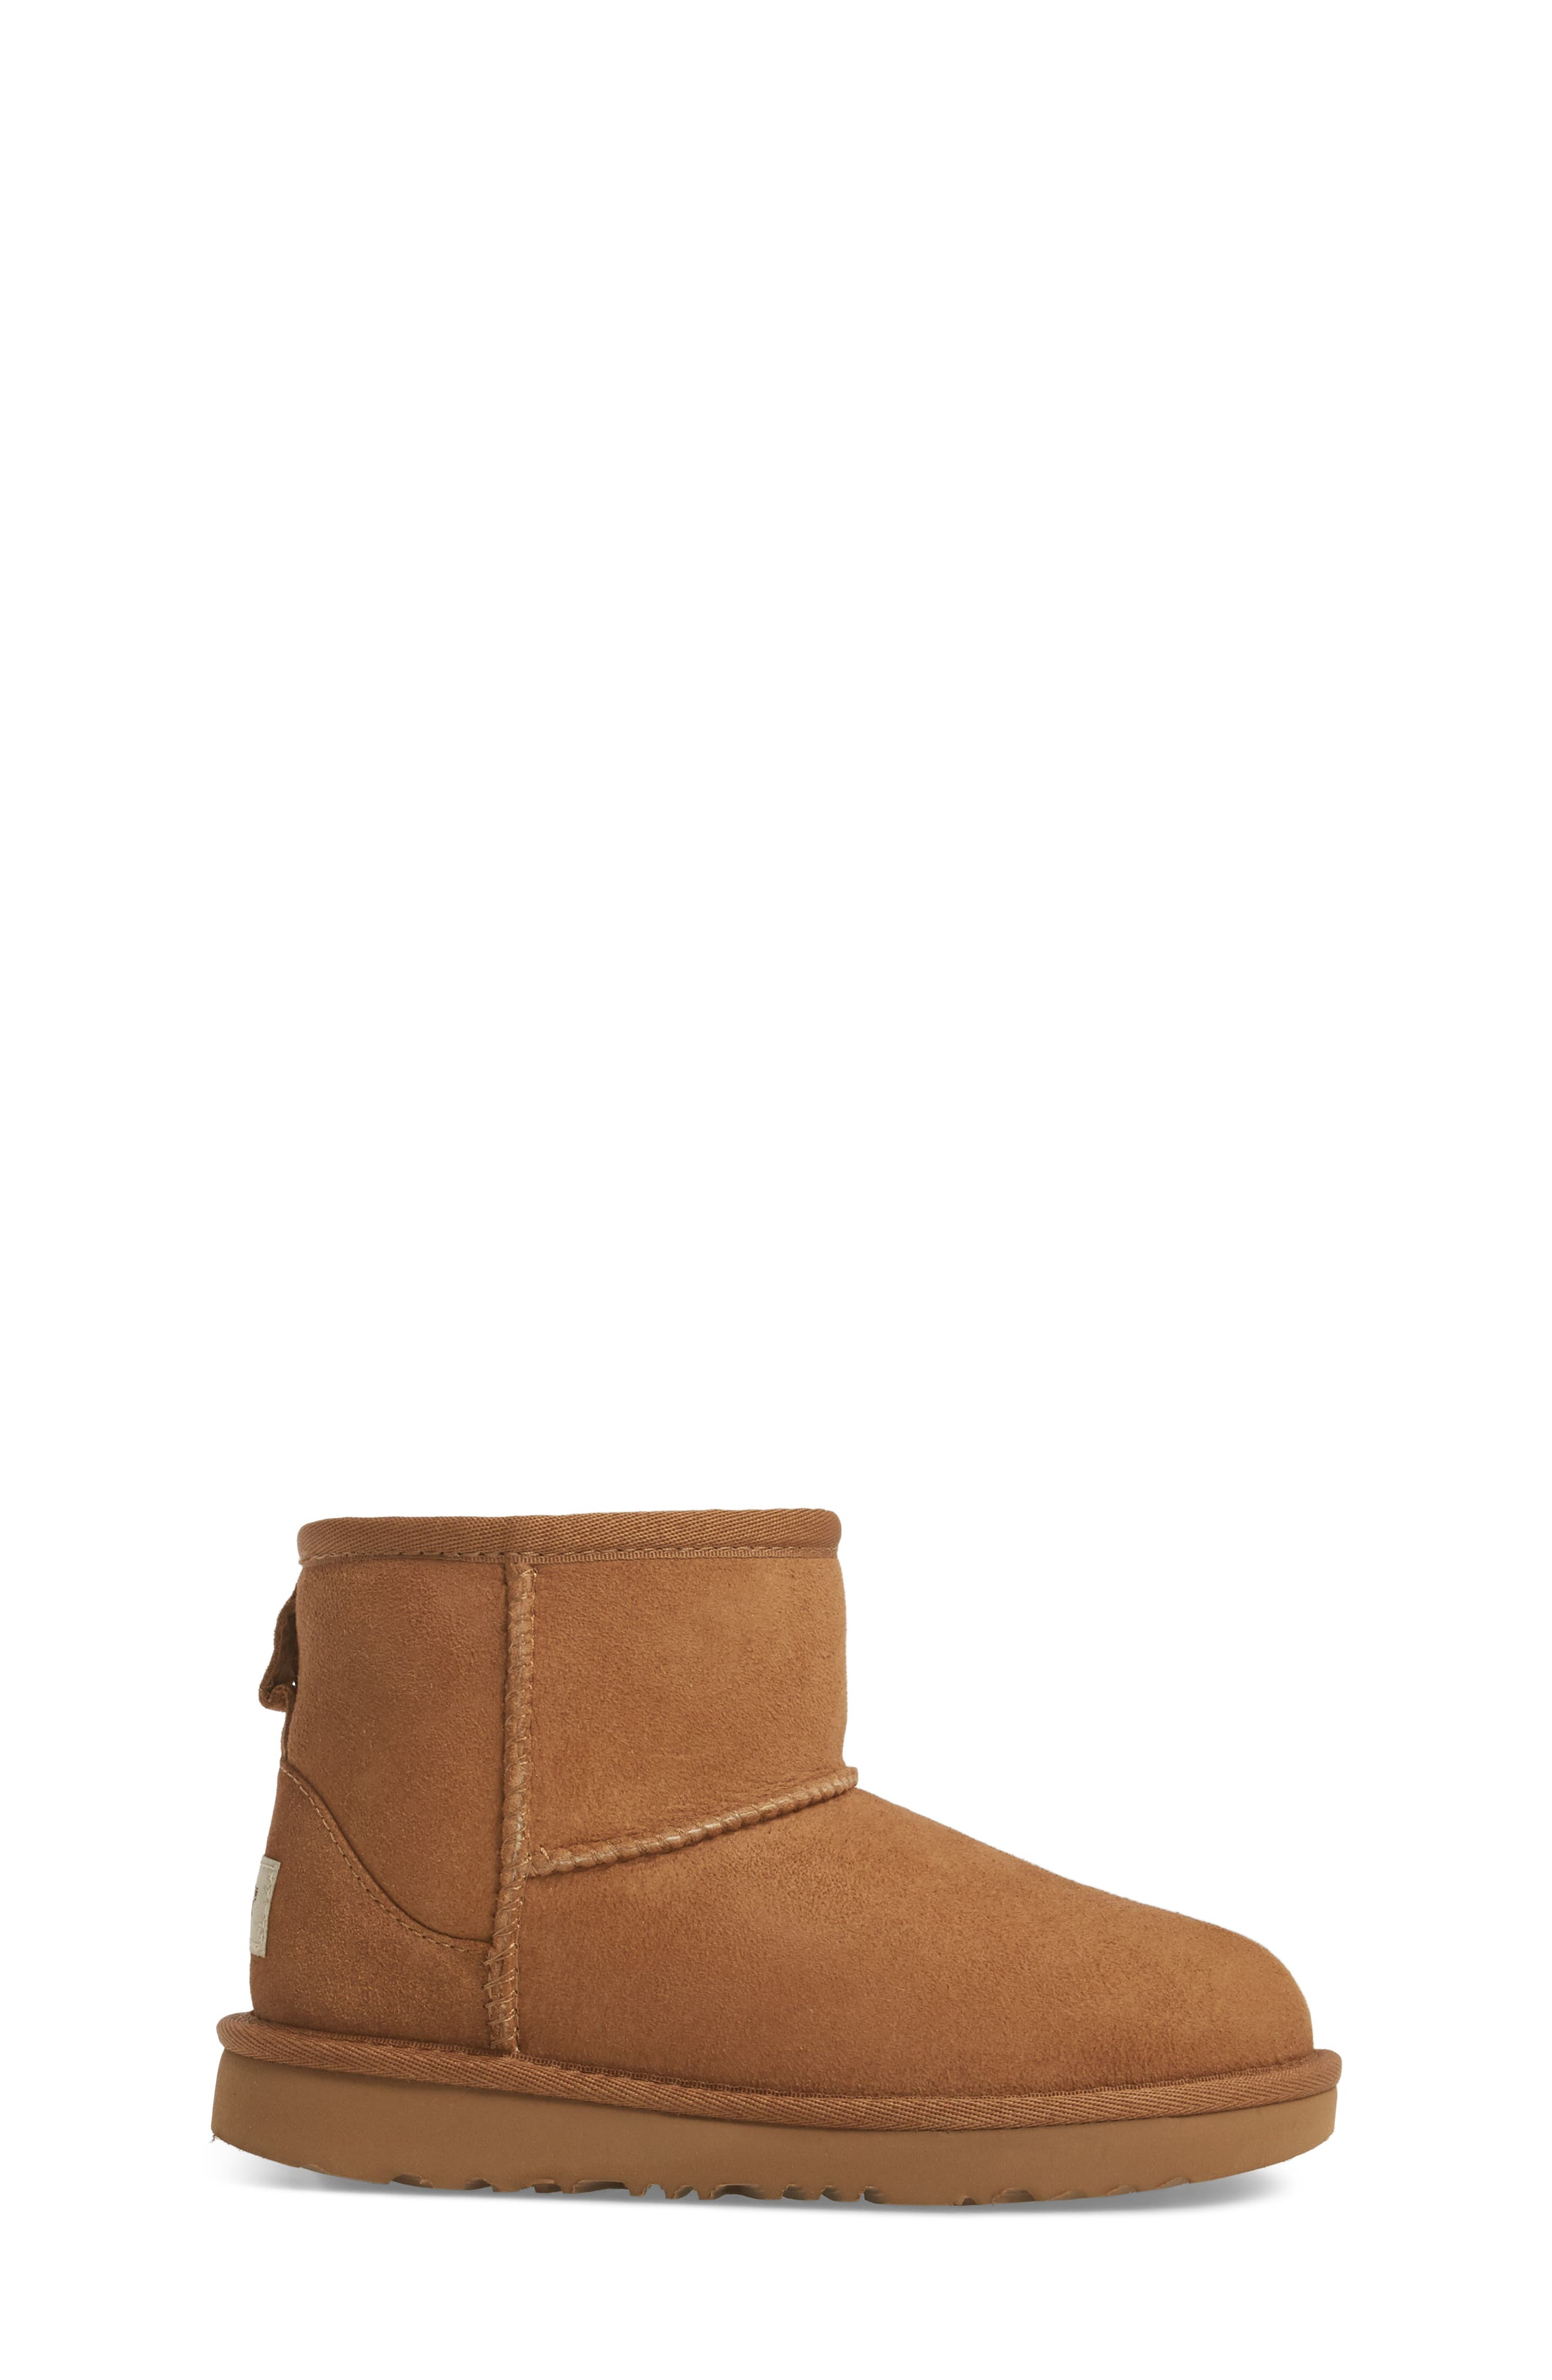 Classic Mini II Water-Resistant Genuine Shearling Boot,                             Alternate thumbnail 3, color,                             CHESTNUT